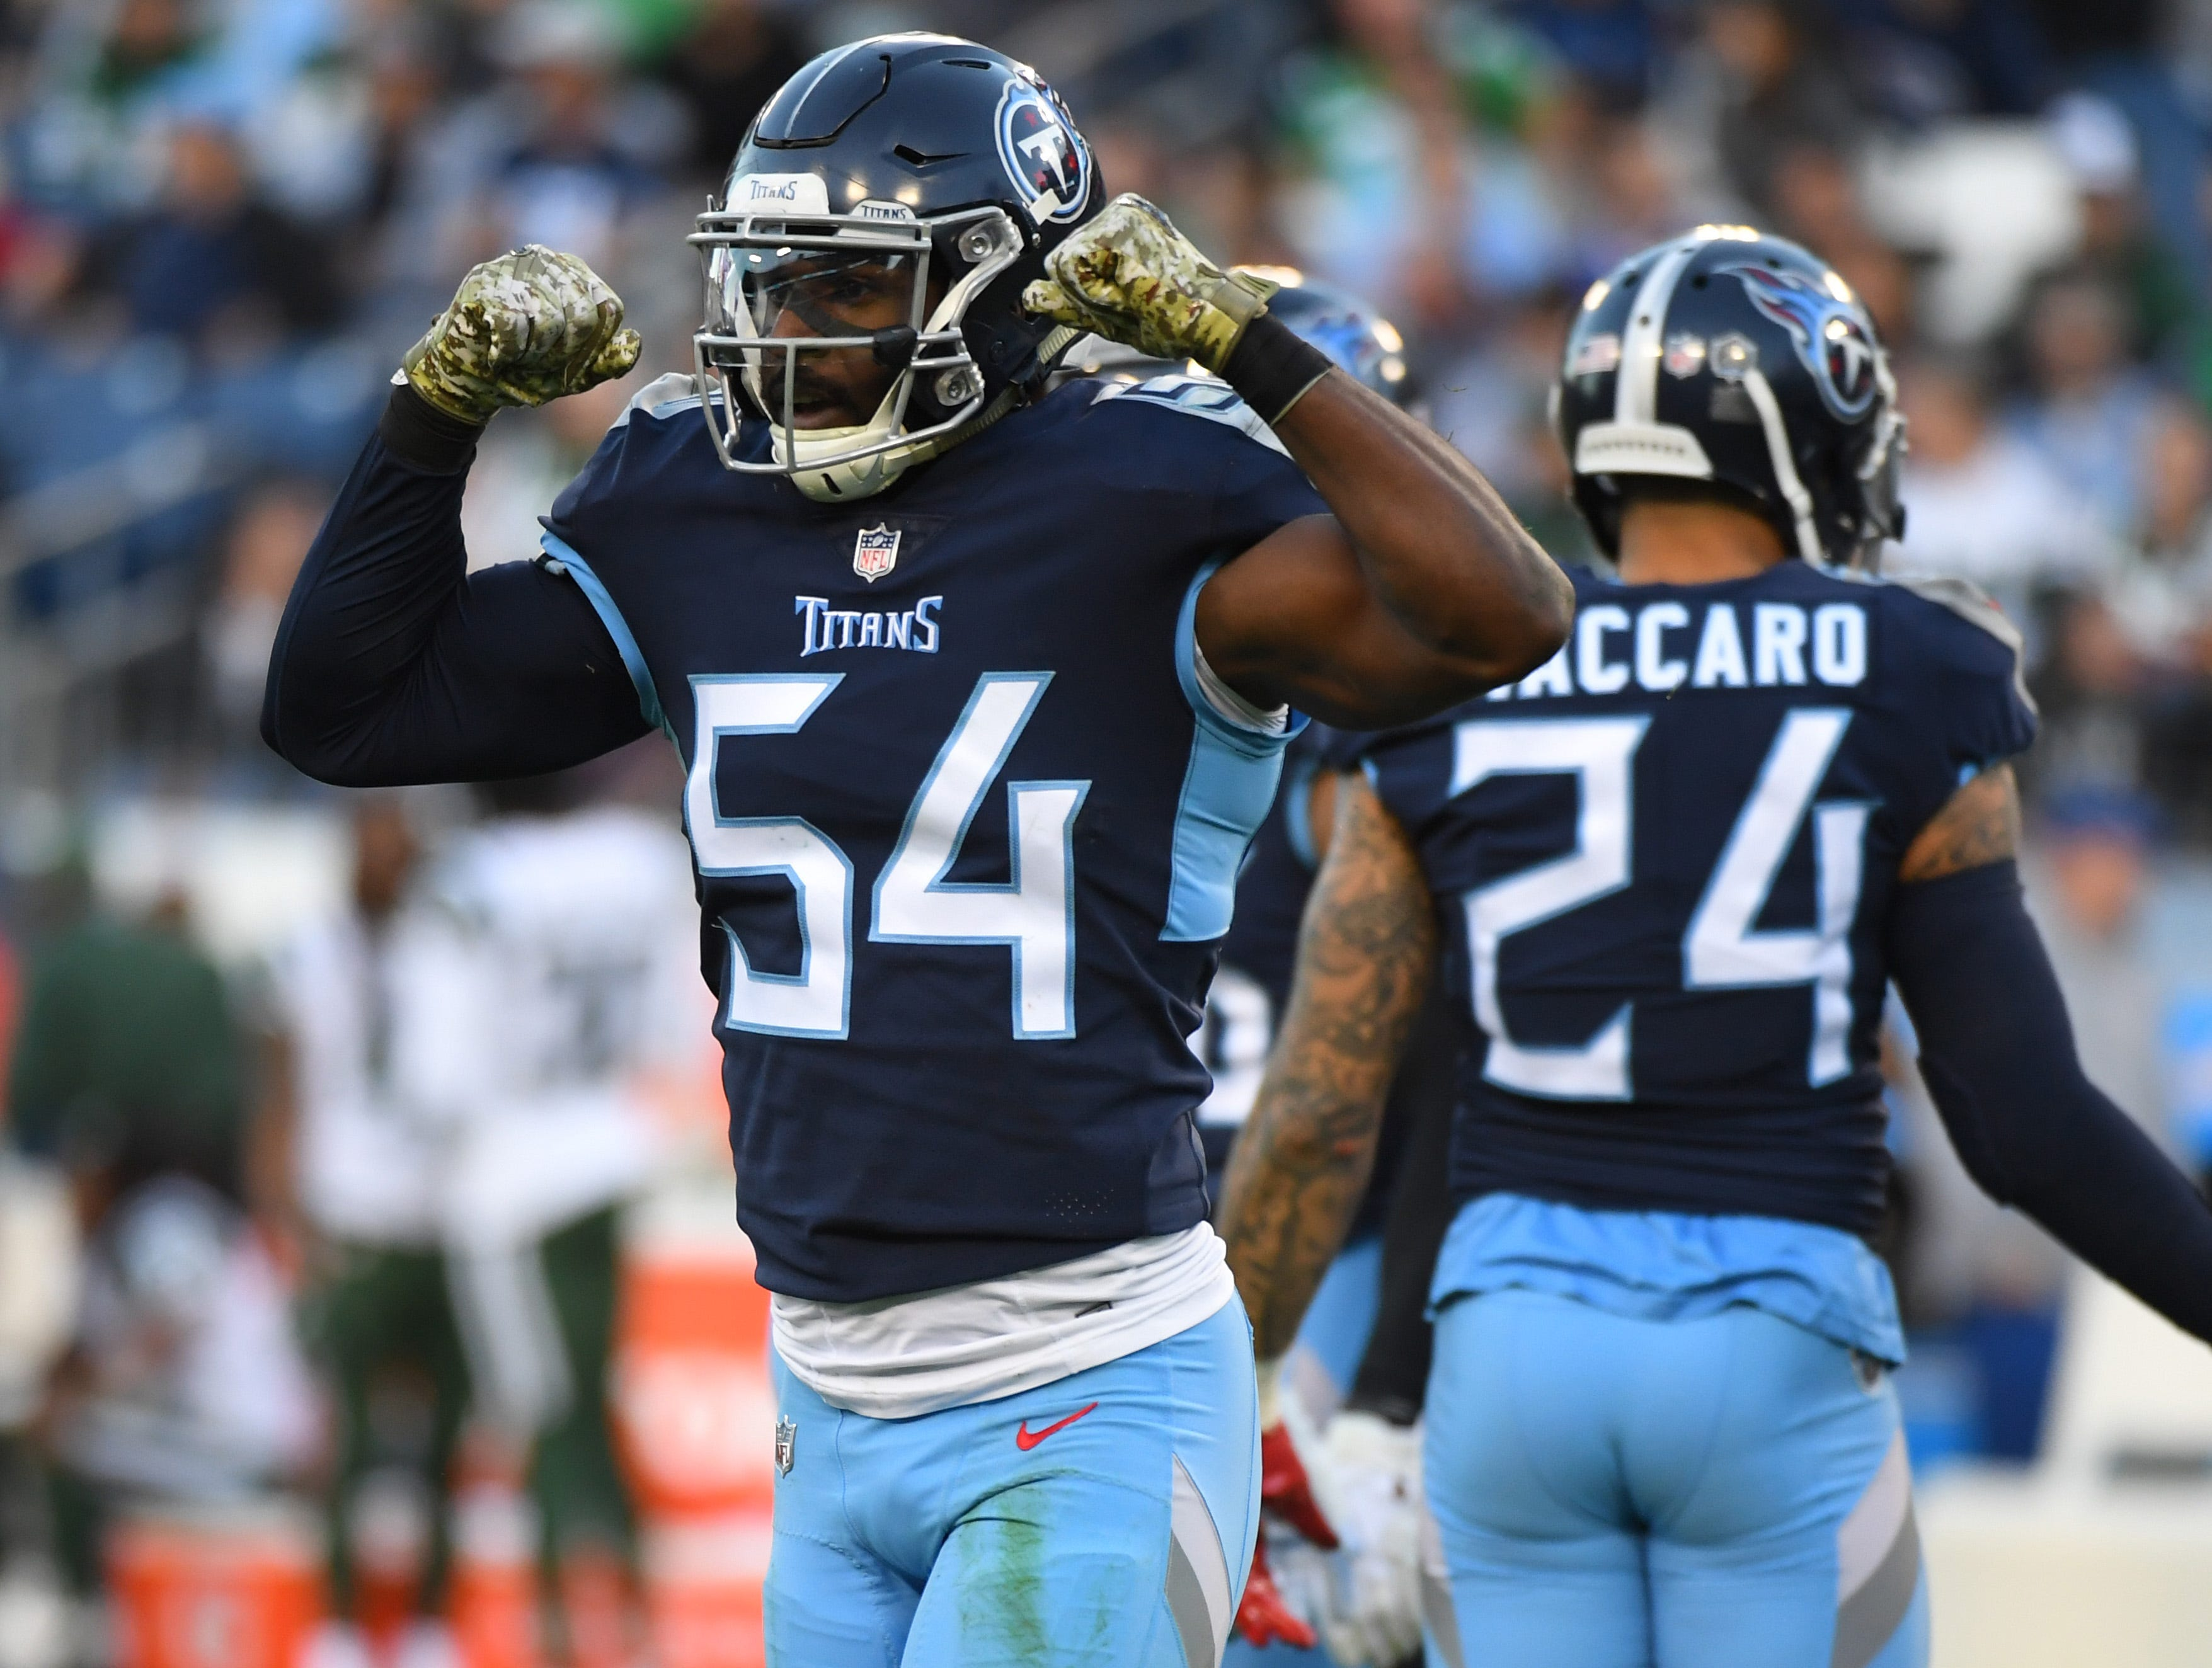 Titans linebacker Rashaan Evans after a defensive stop during the first half against the Jets.